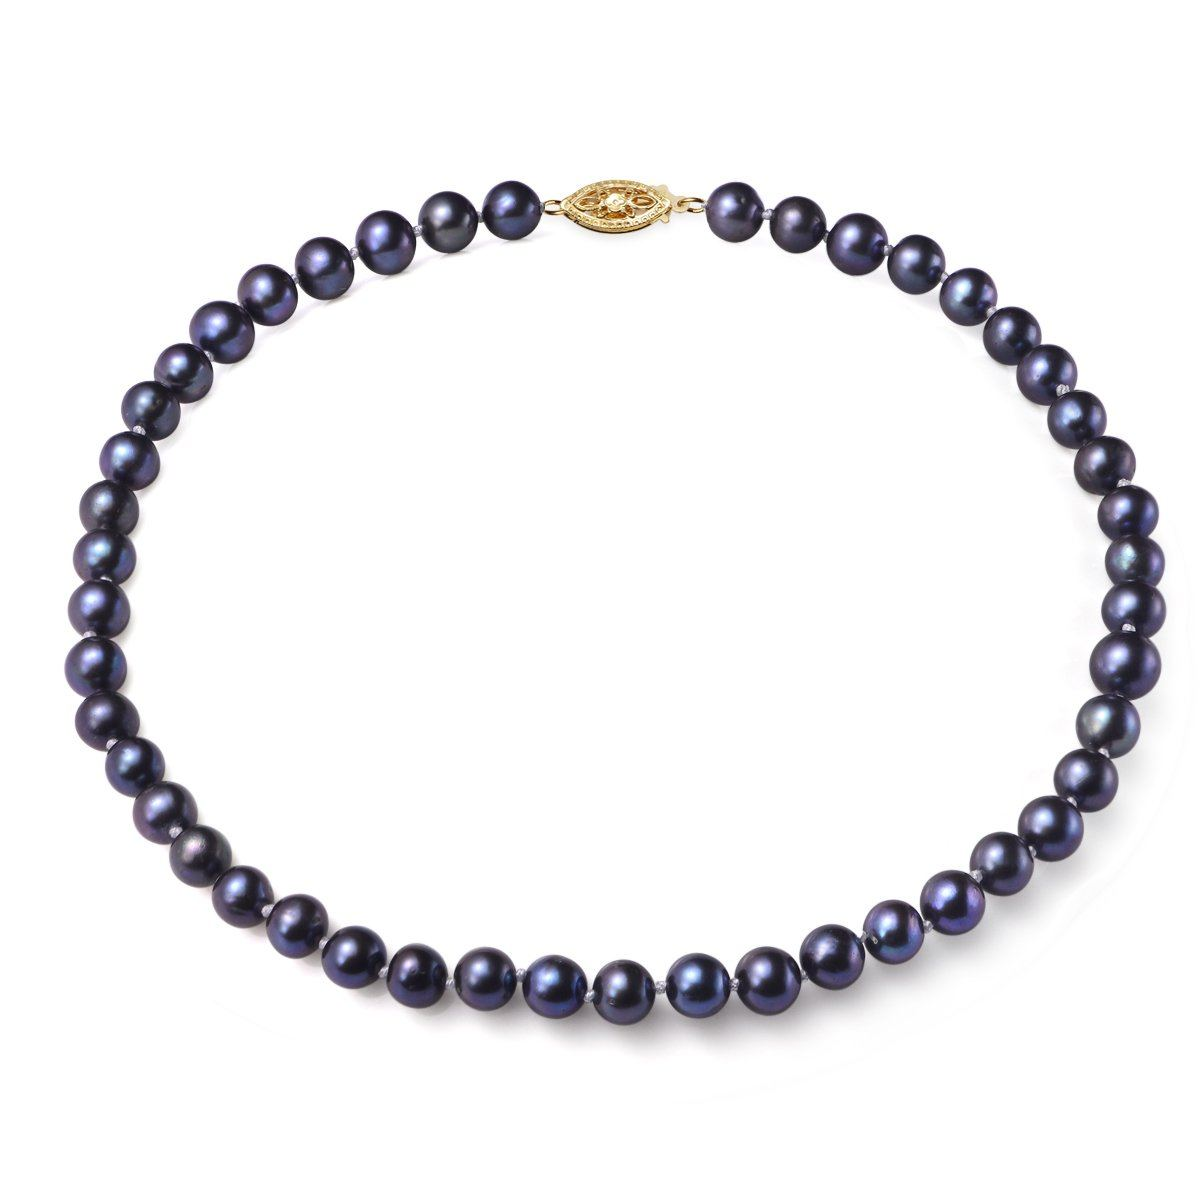 black, 7-8mm, aa, cultured freshwater pearl strand necklace with 14k yellow gold filled fish hook